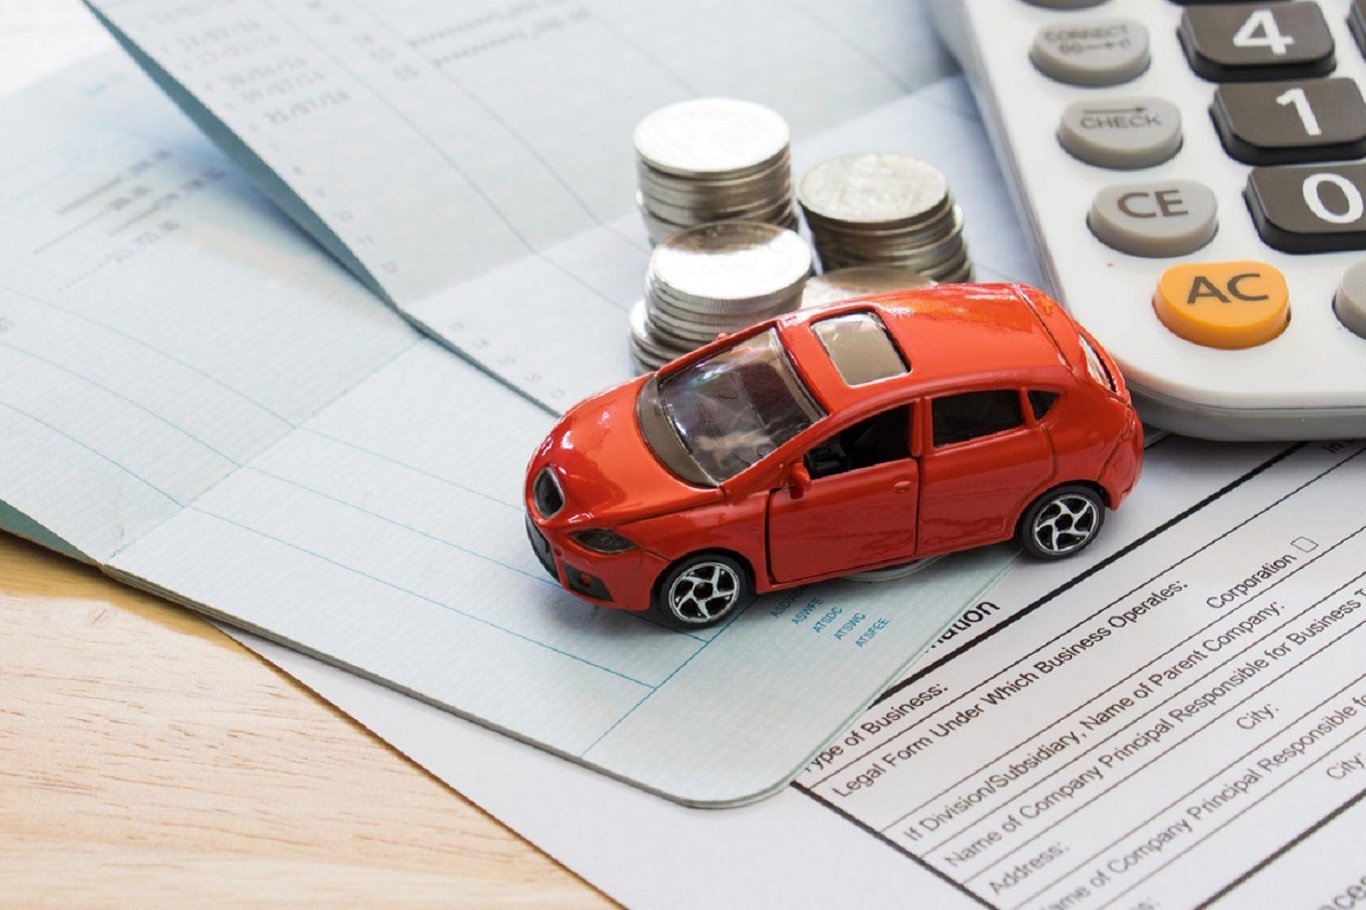 How Much Is Car Insurance A Month On Average?